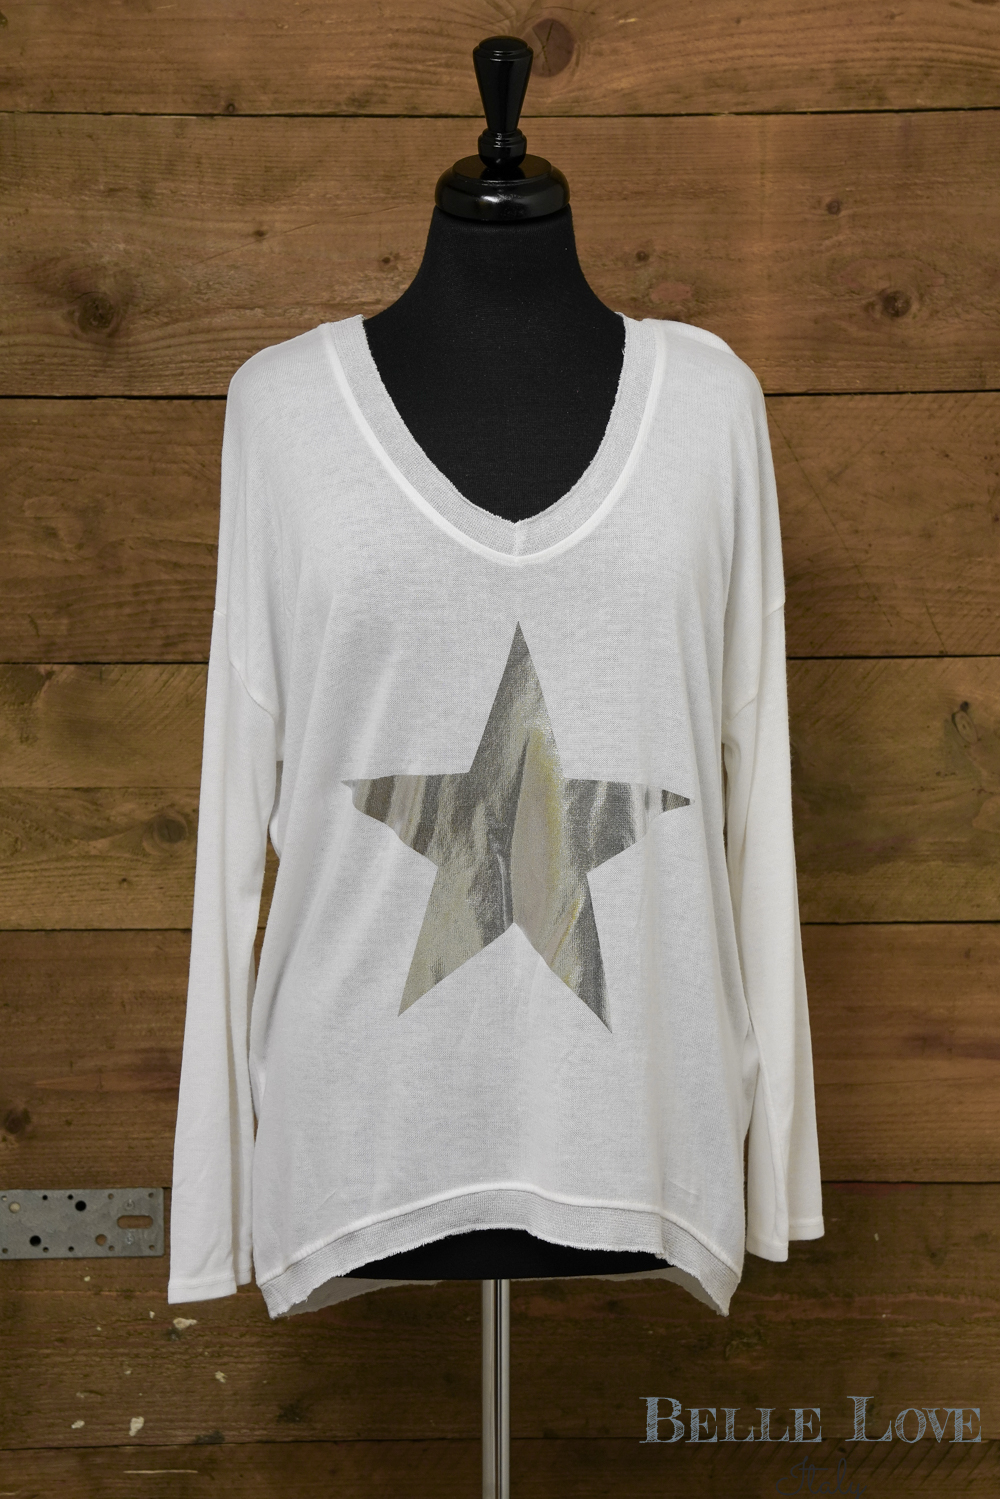 Belle Love Italy Lightweight Metallic Silver Star Top